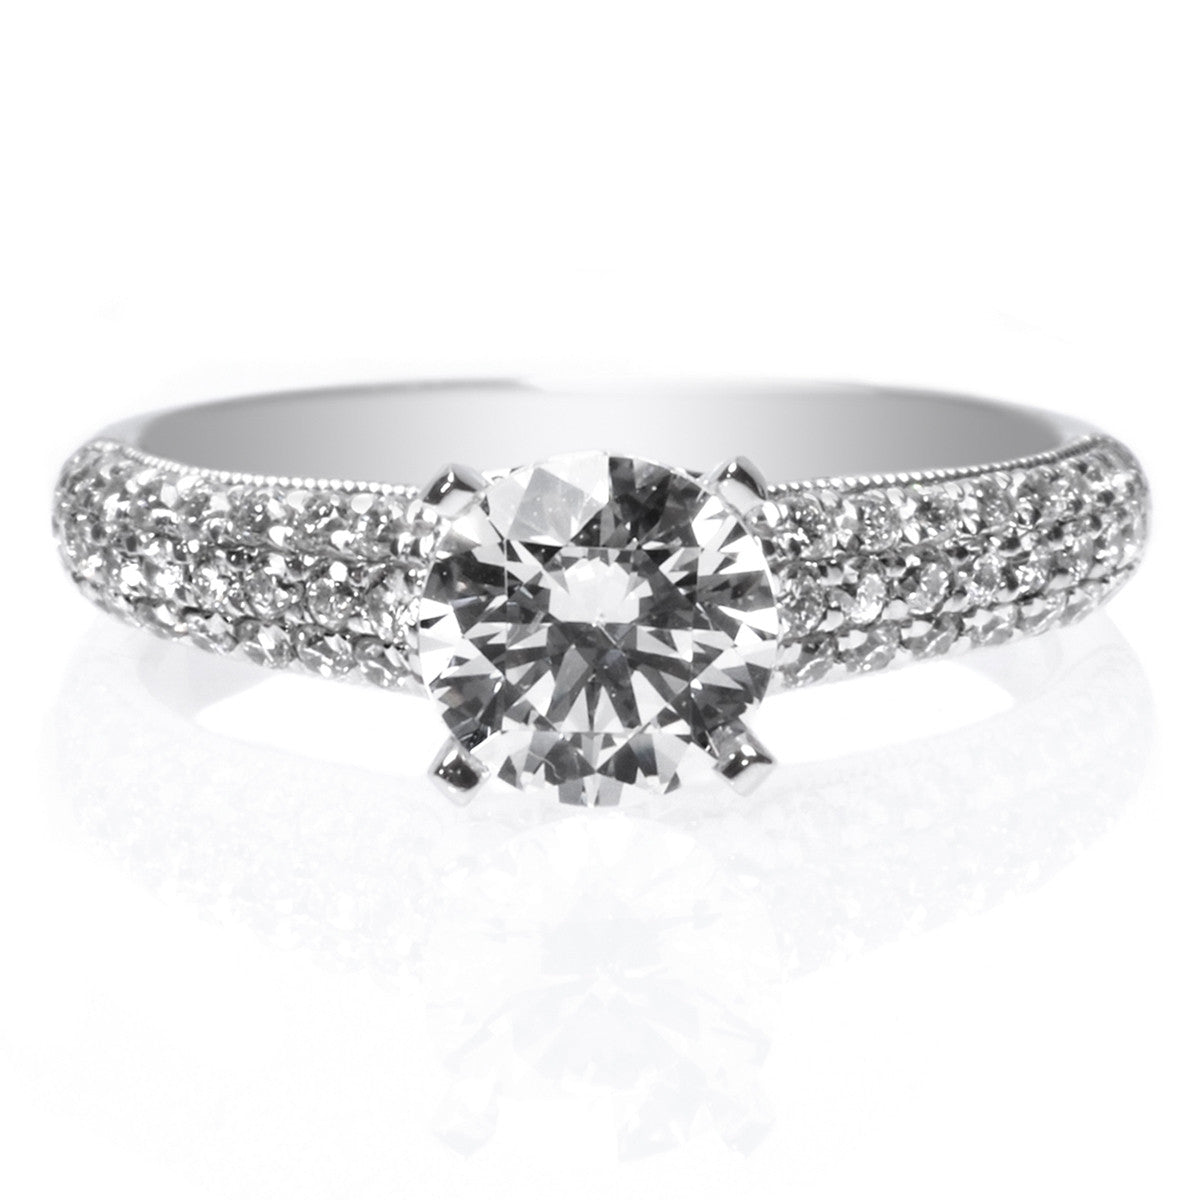 Platinum Three Row Pave Diamond Engagement Ring